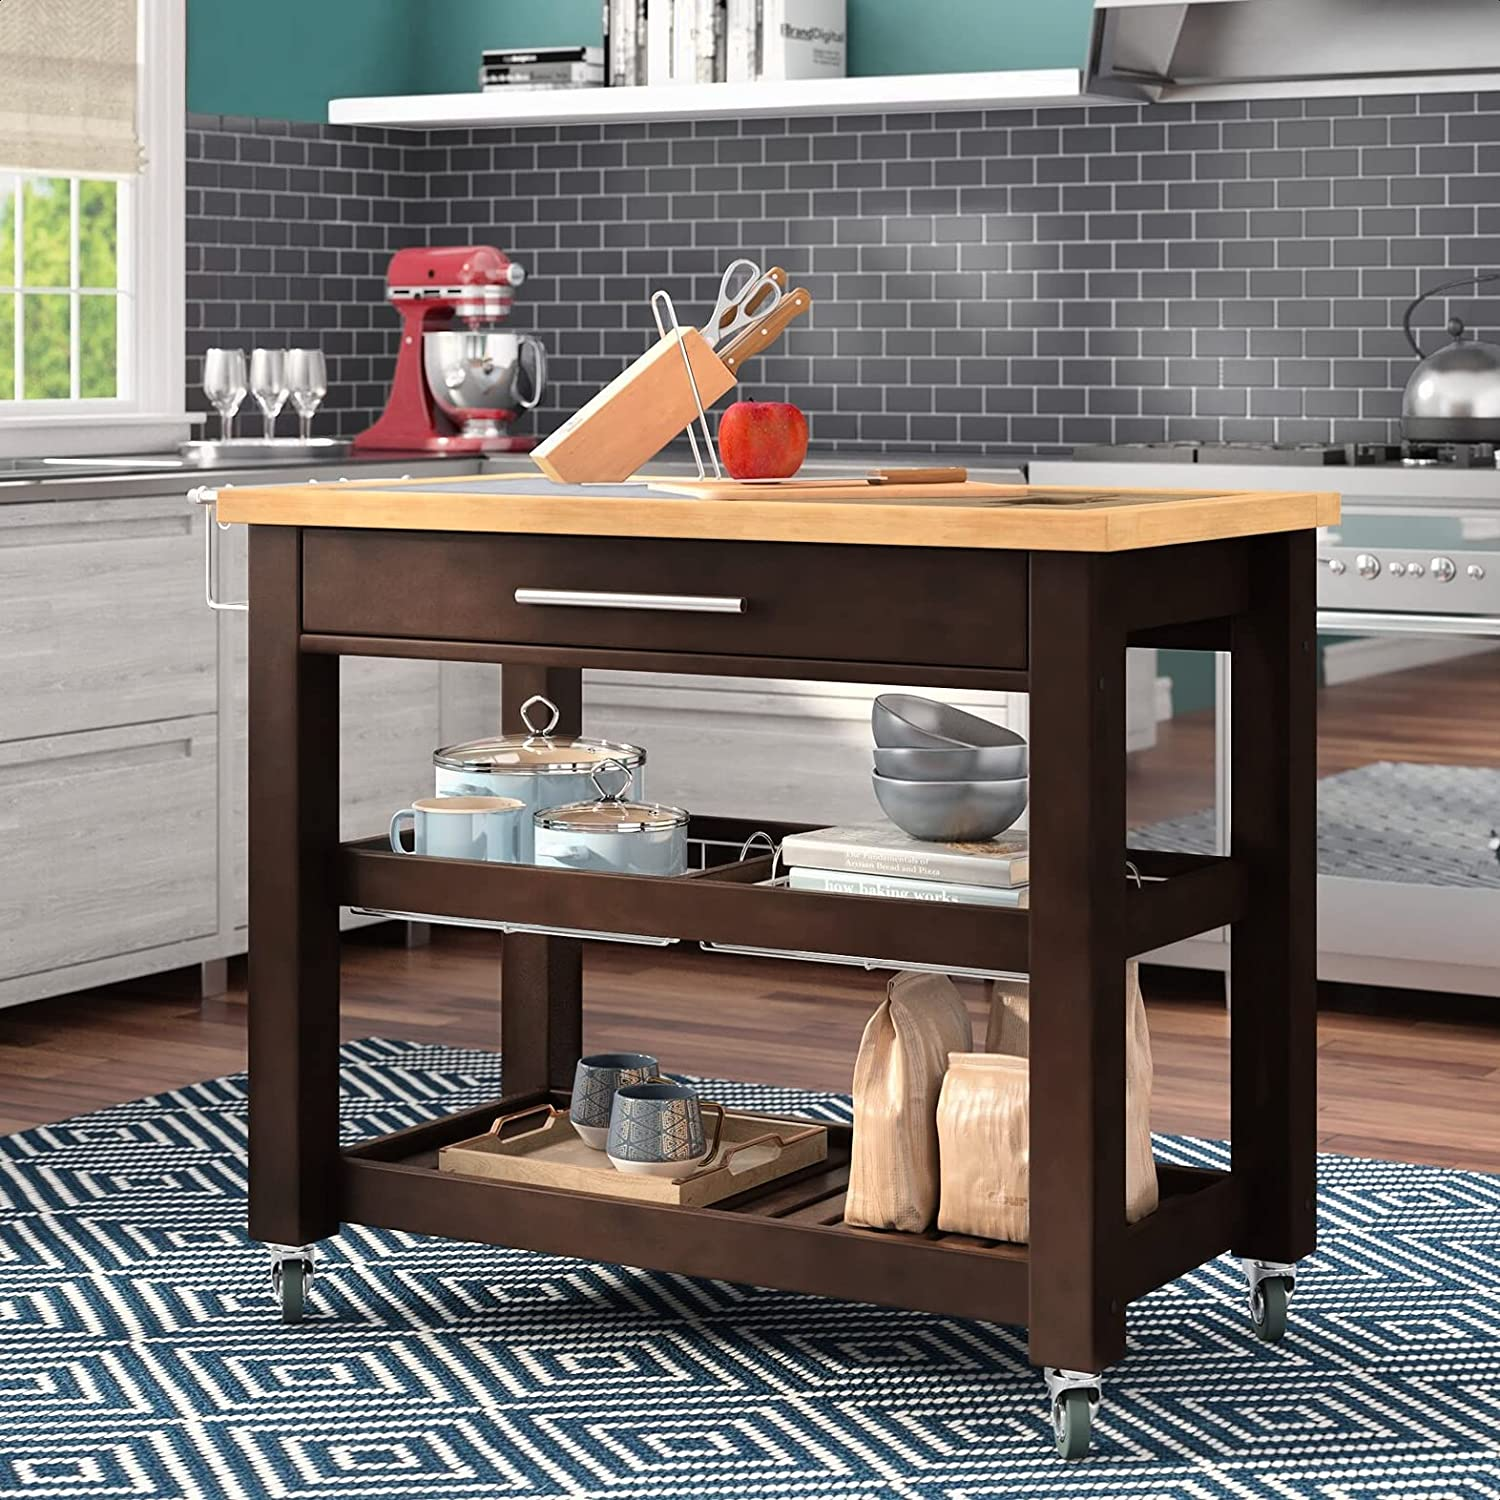 Sydney Kitchen Classic Island with Granite and Thic Top Wood Countertop online shopping